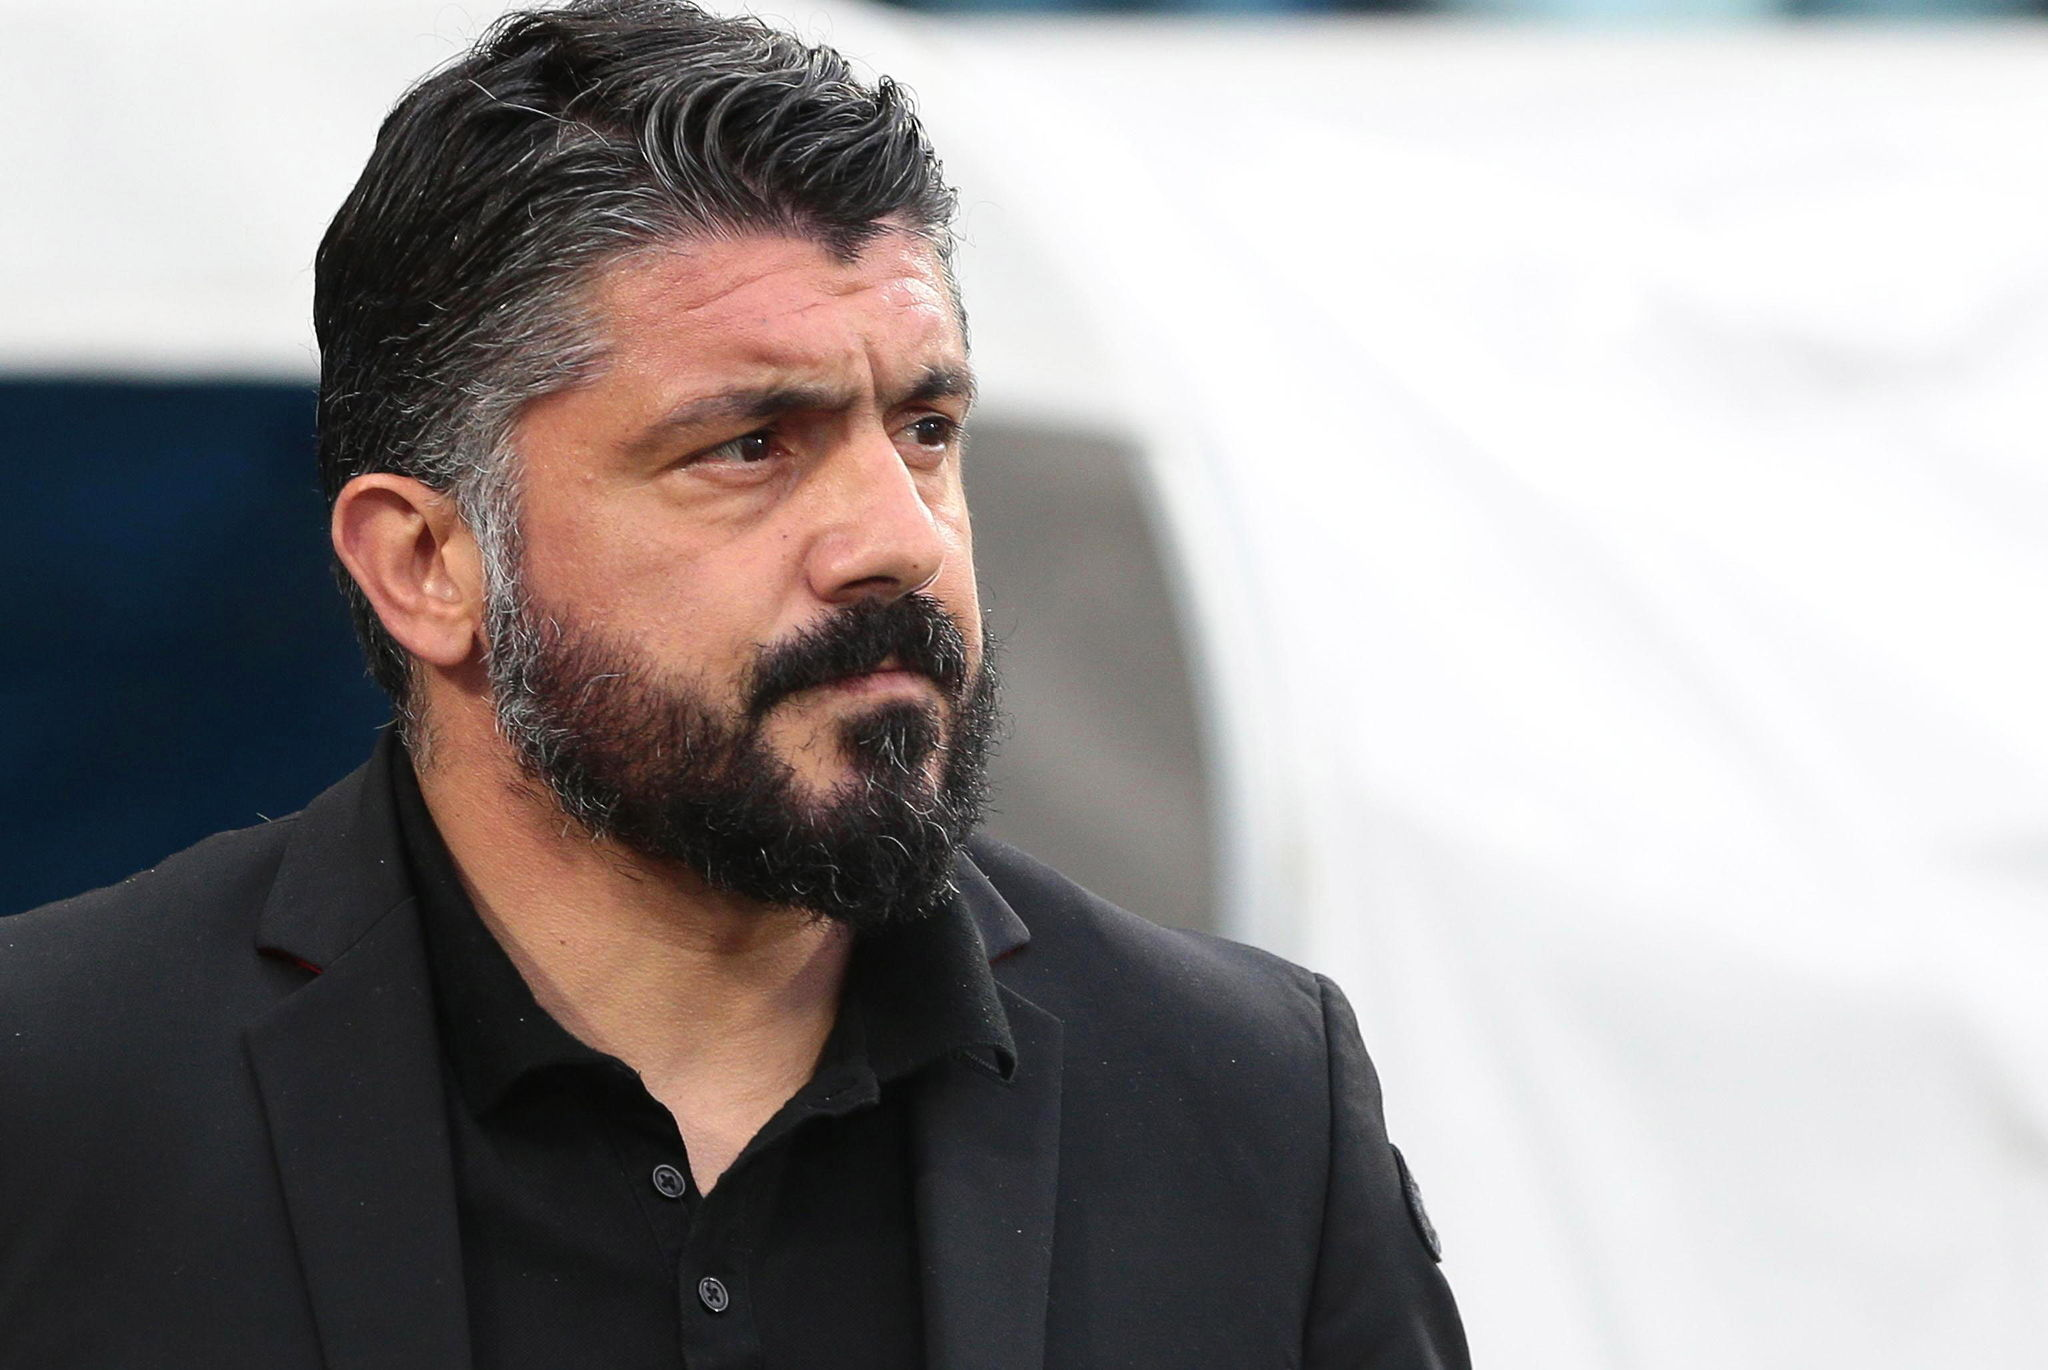 Ferrara (Italy), 26/05/2019.- <HIT>Milan</HIT>s head coach Gennaro Gattuso during the Italian Serie A soccer match between SPAL Ferrara and AC <HIT>Milan</HIT> in Ferrara, Italy, 26 May 2019. (Italia) EFE/EPA/SERENA CAMPANINI